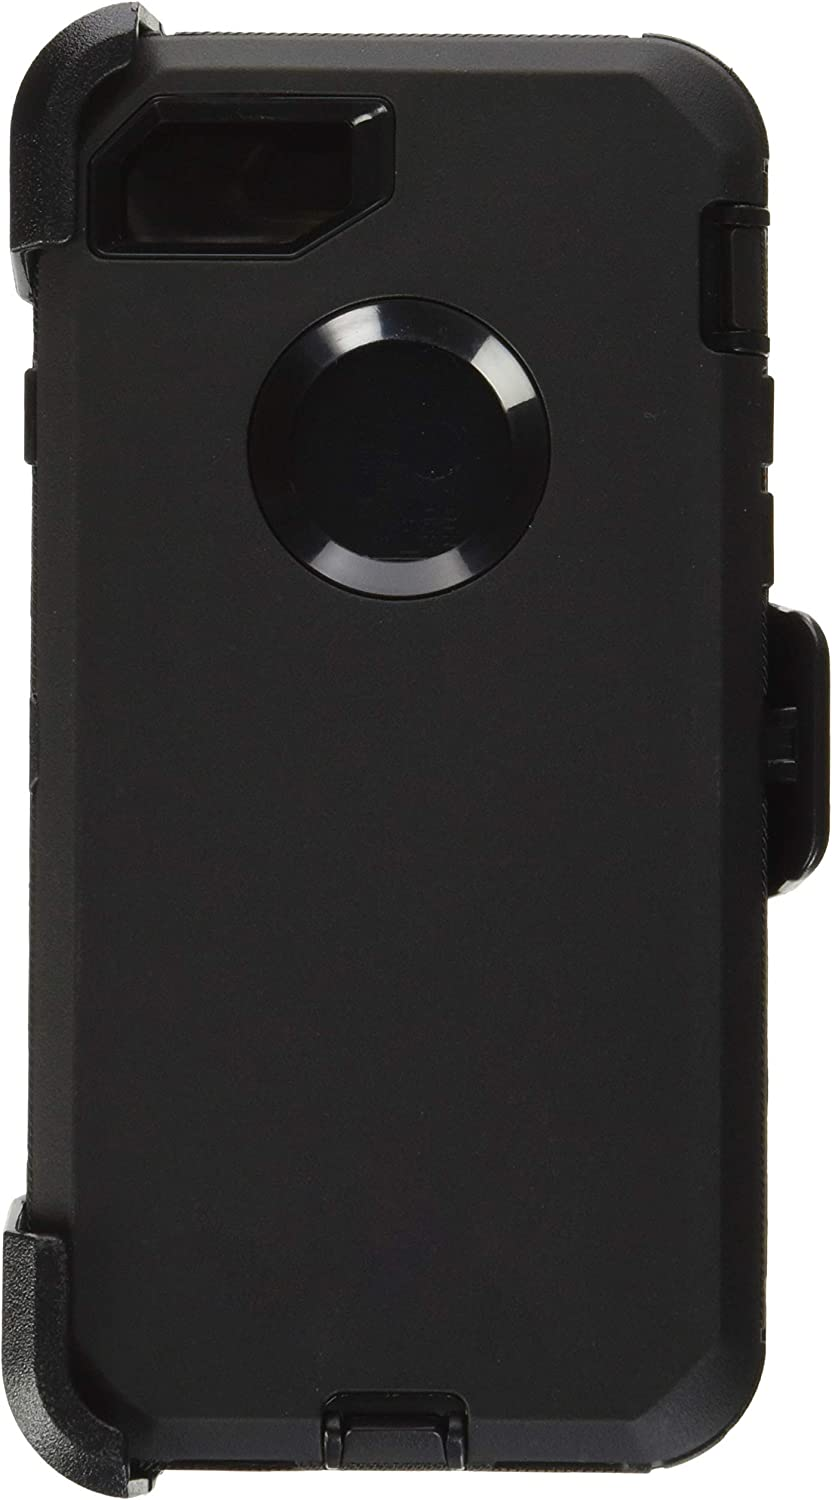 Defender Case Compatible with iPhone Se 2020 and Compatible with iPhone 8 and iPhone 7